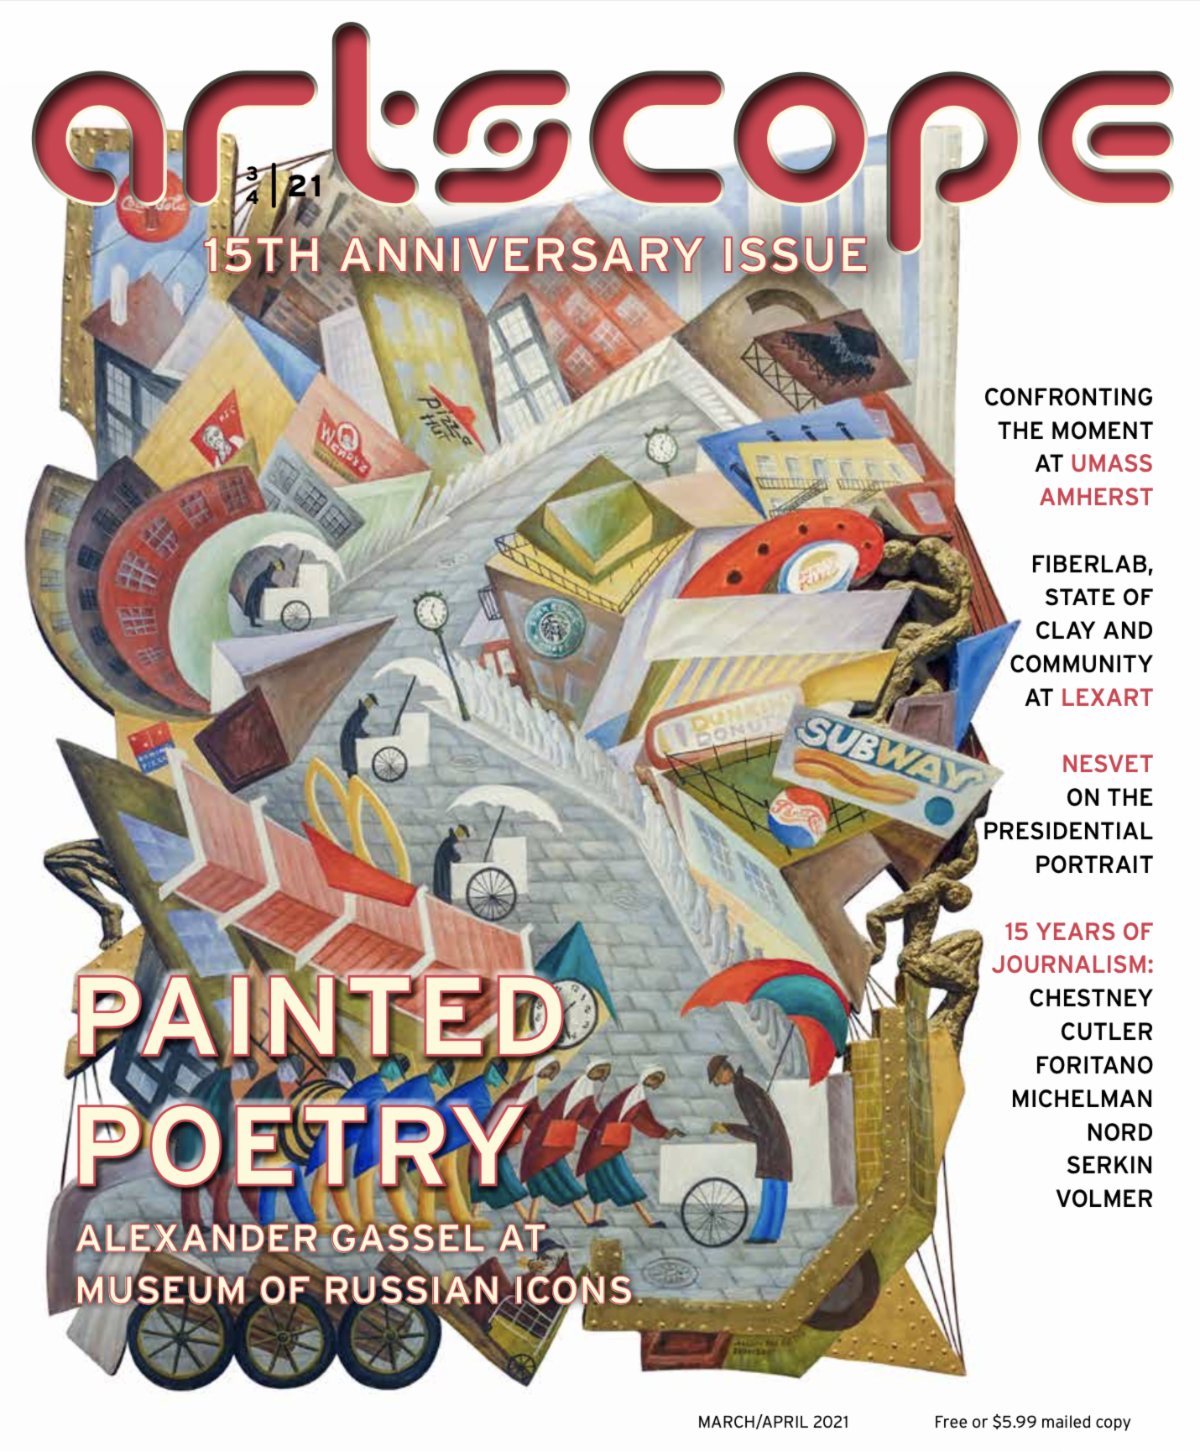 March/April 2021 Artscope